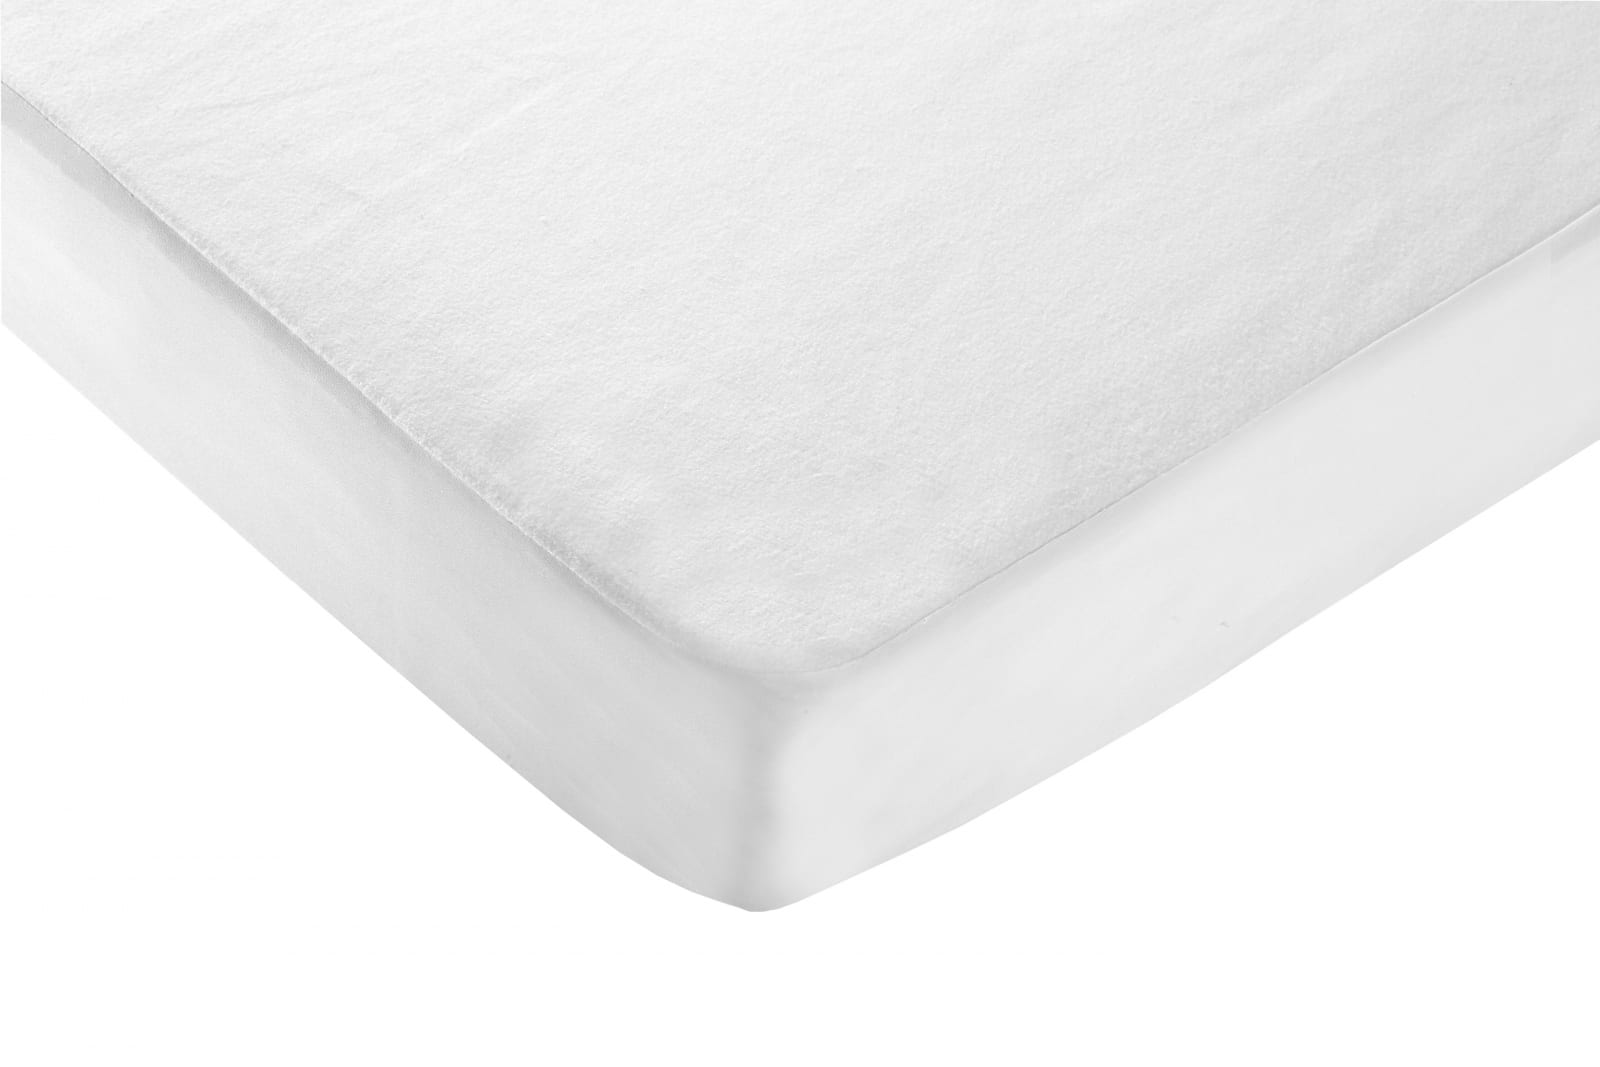 Waterproof Mattress Protector – Cot Bed product image